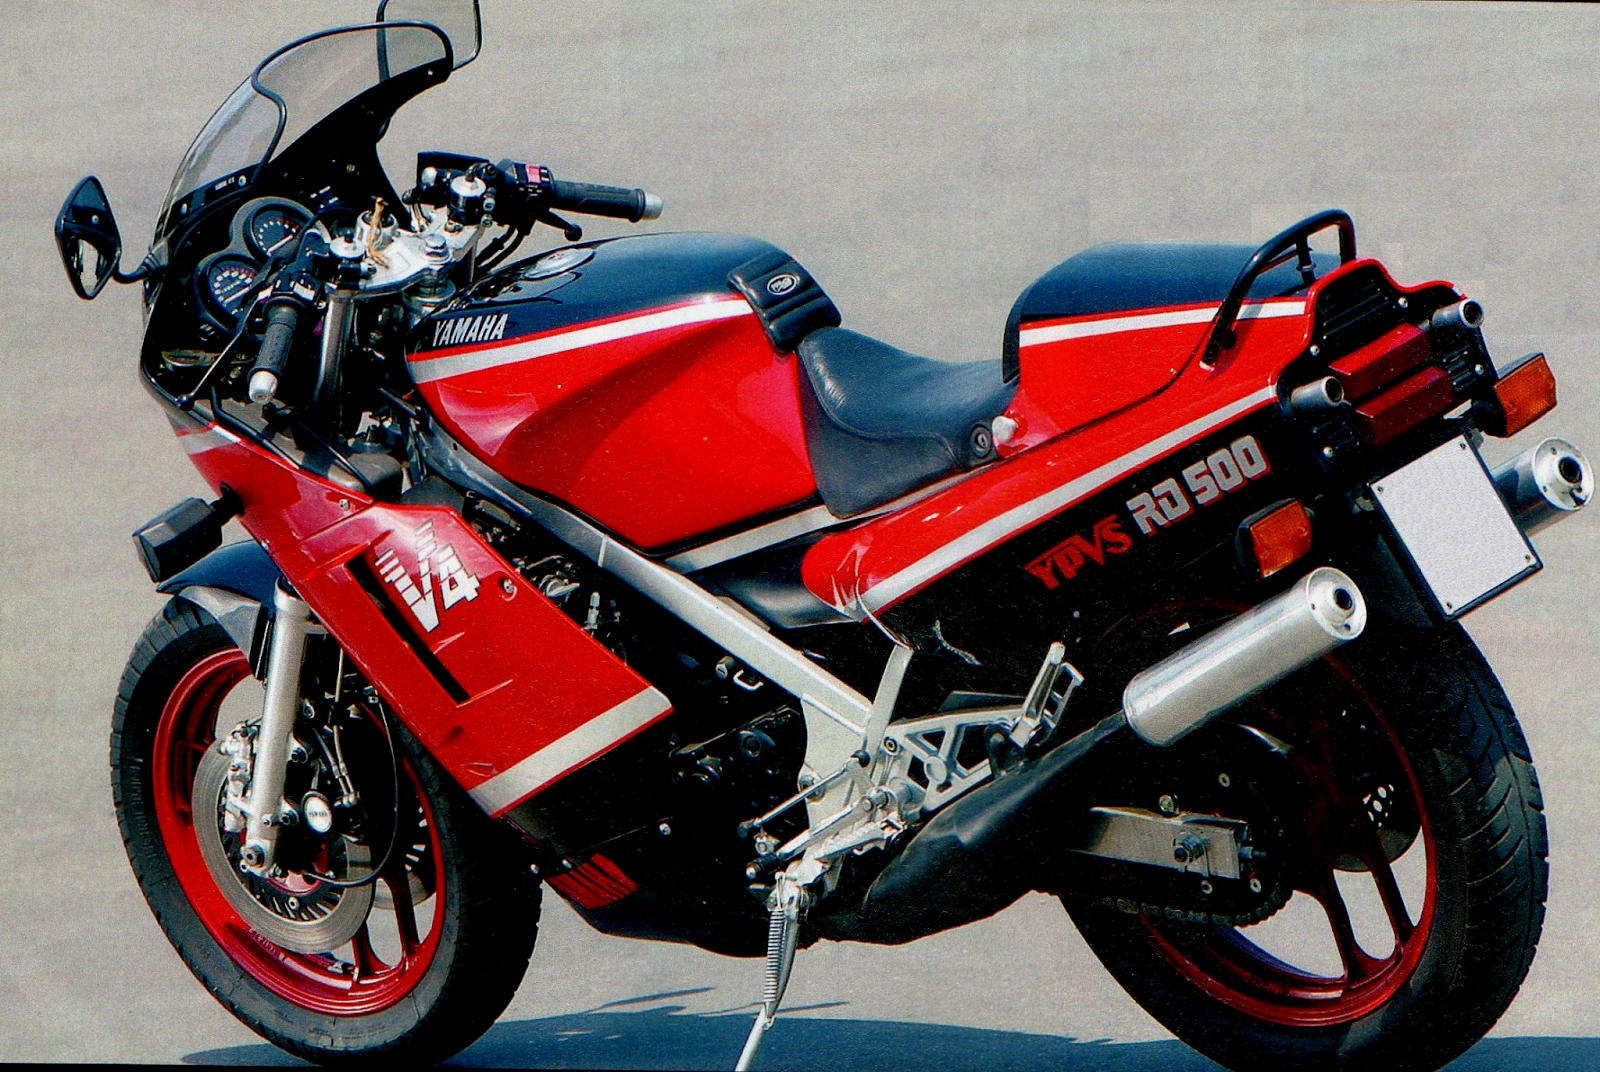 Yamaha RD 500 LC 1985 images #90046